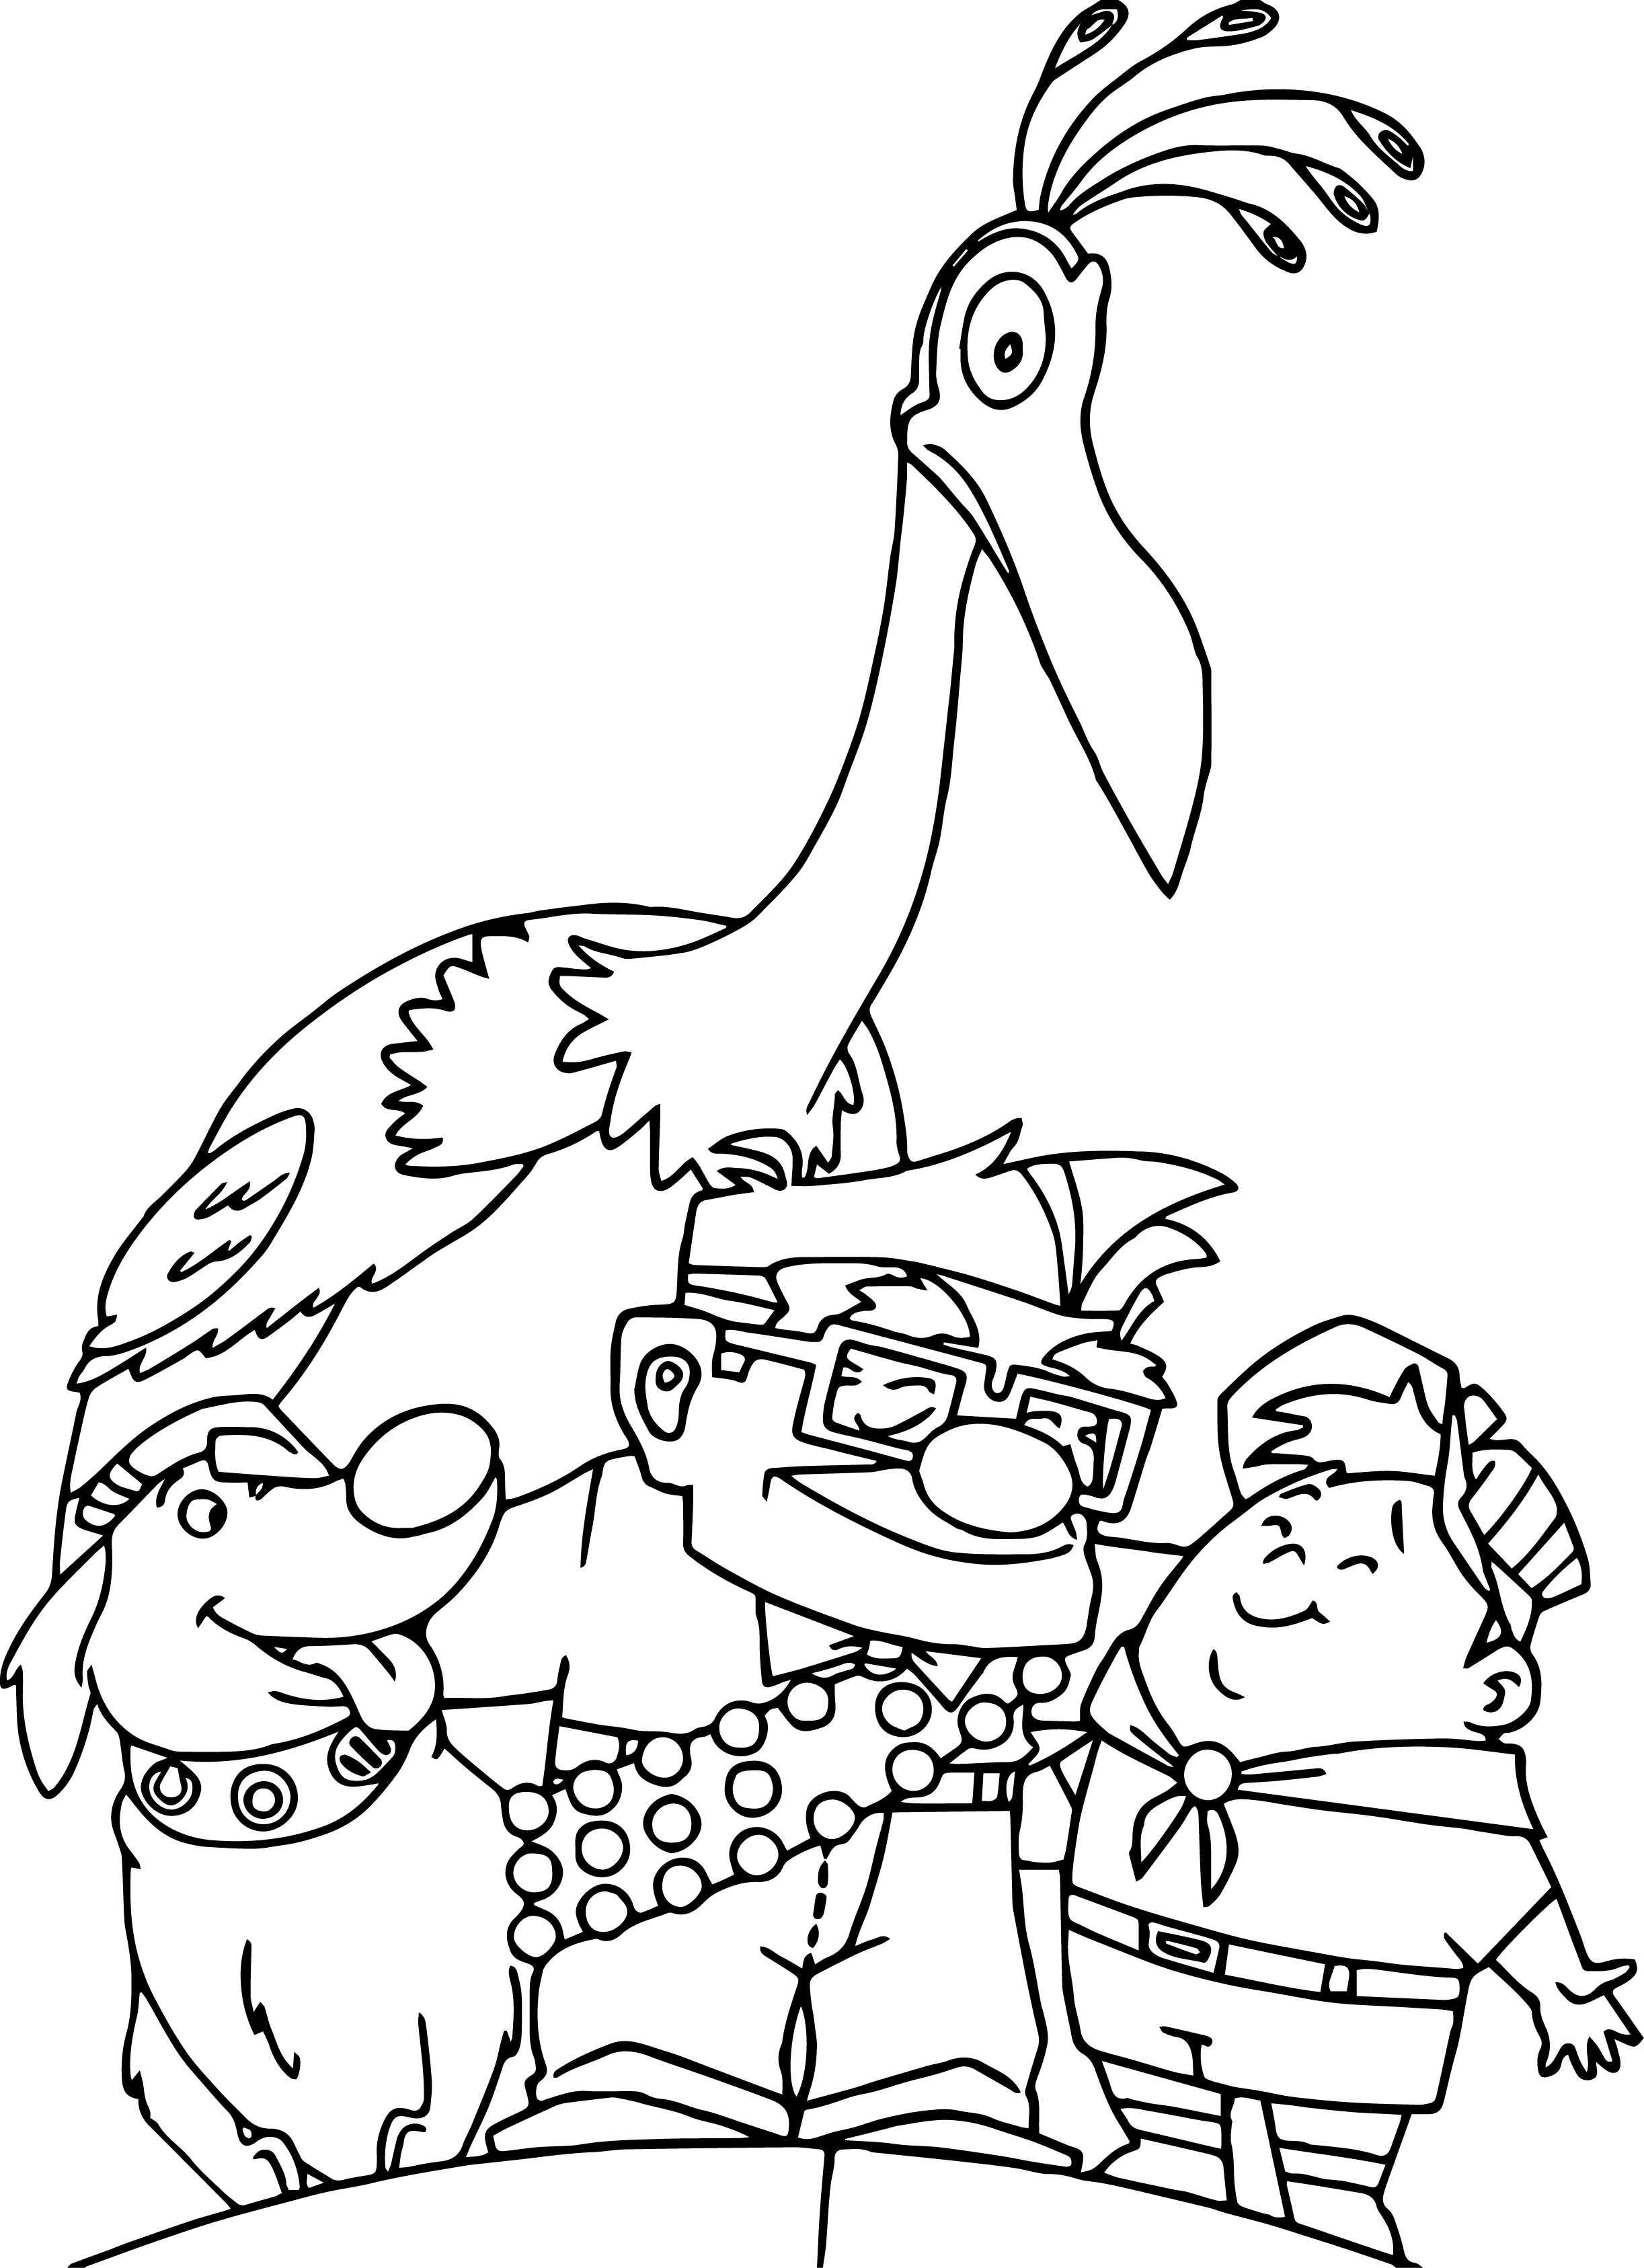 Disney Pixar Up Coloring Pages Wecoloringpage Up Coloring Pages